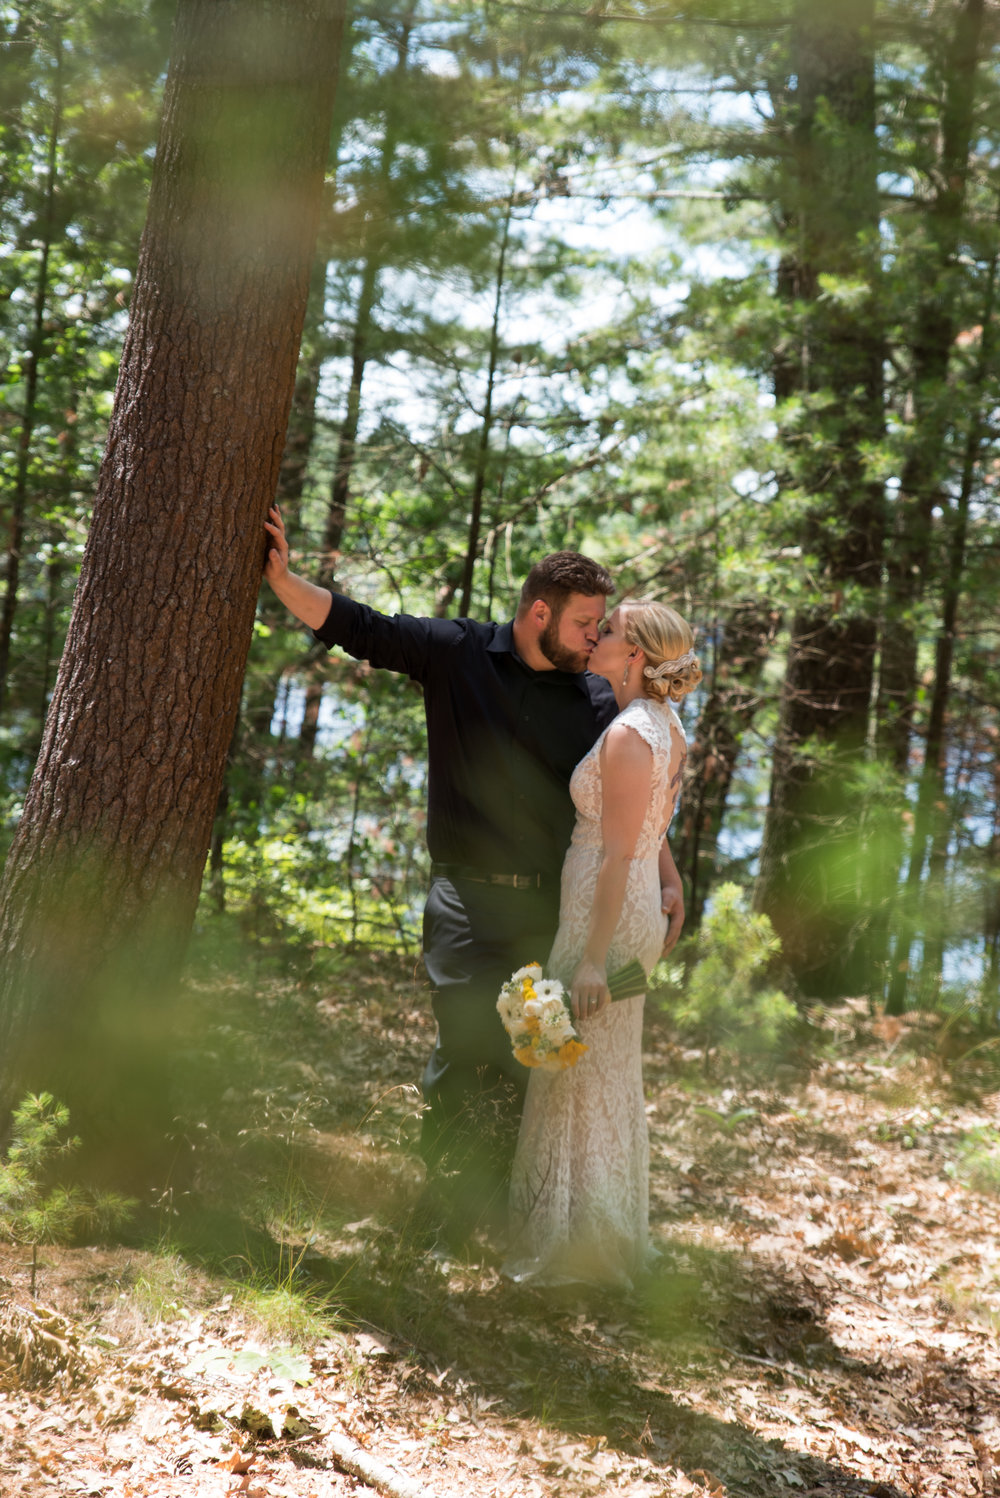 Lisa and Nate, weddings, Fall, Autumn, marriage, nature, October, Brian, Latham, wedding photography, rustic, woodsy, woods, DIY, Connecticut, Massachusetts, lake, sunflower, pond, yellow, simple, gorgeous, blue, ceremony, sunshine